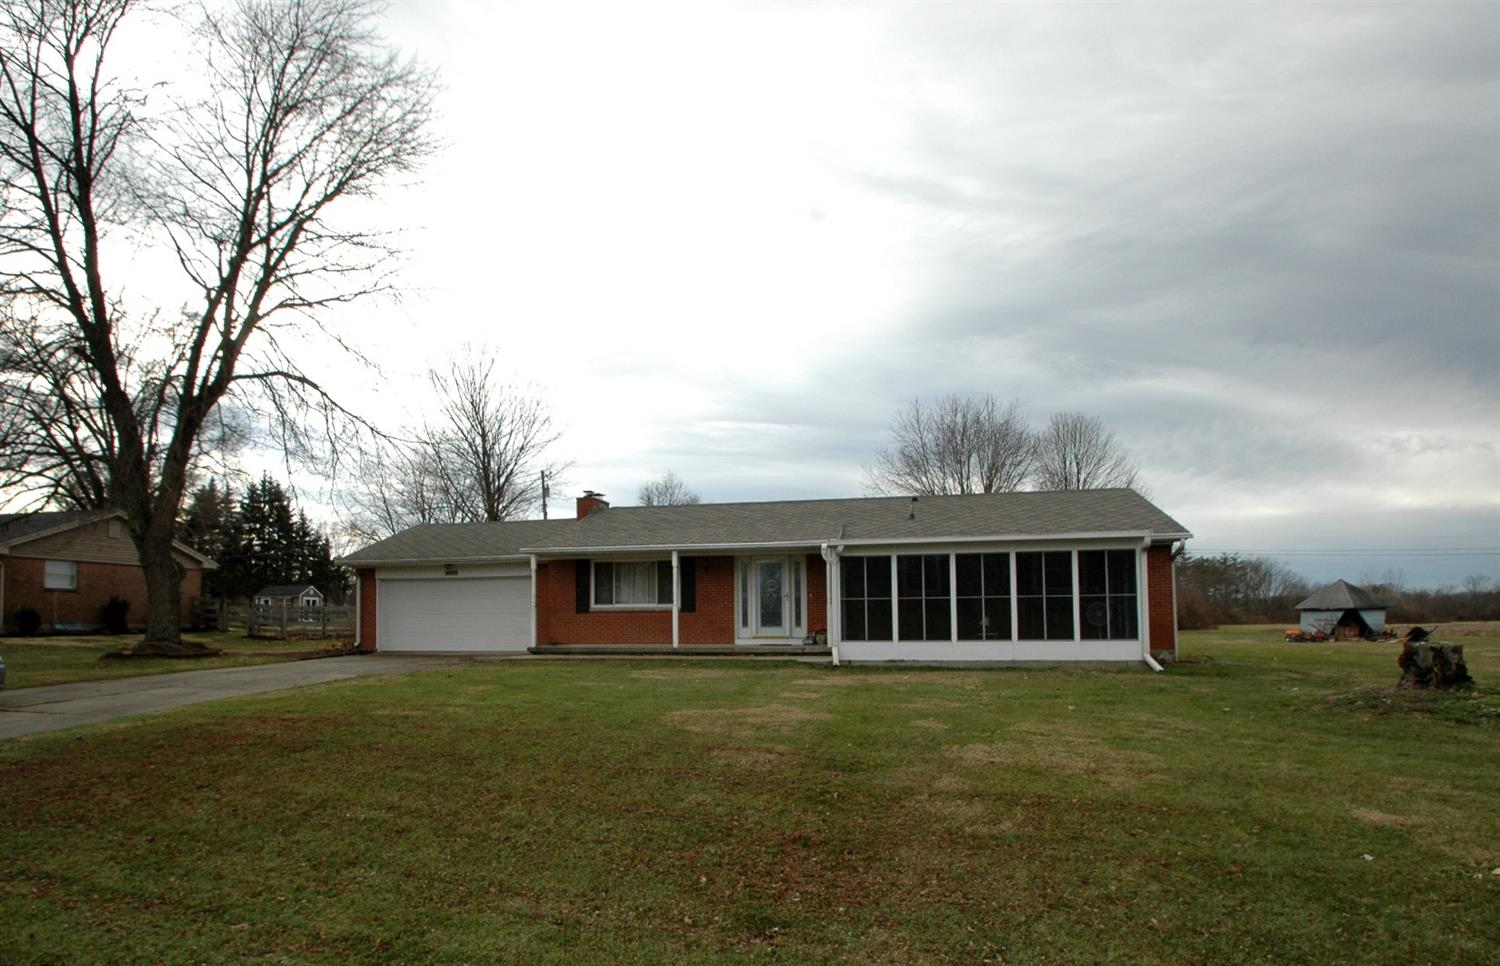 Property for sale at 3505 Crestview Avenue, Clearcreek Twp.,  OH 45036